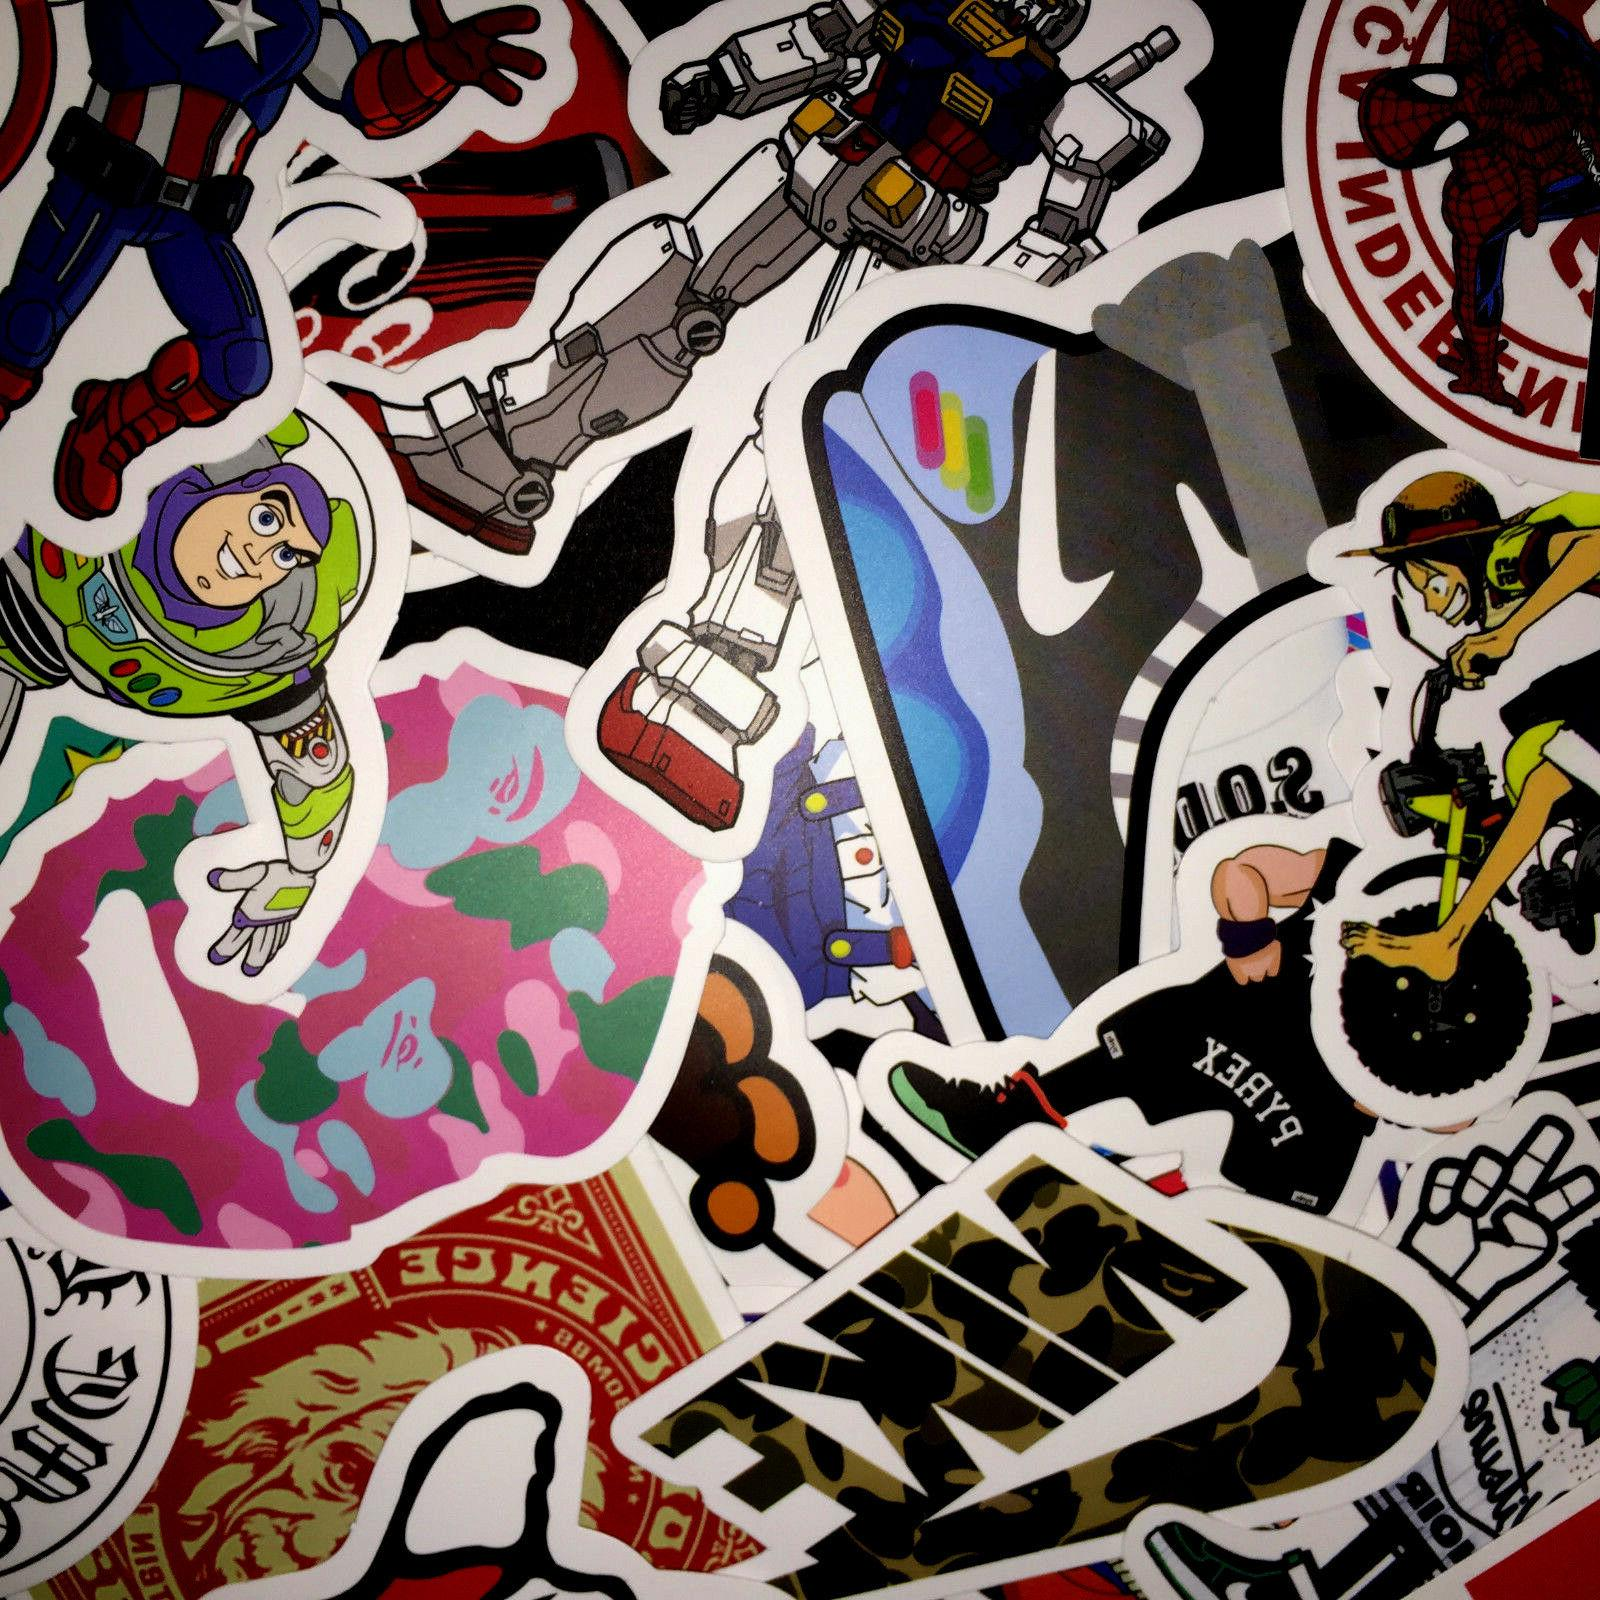 50 Vinyl Laptop Luggage Dope Sticker Lot